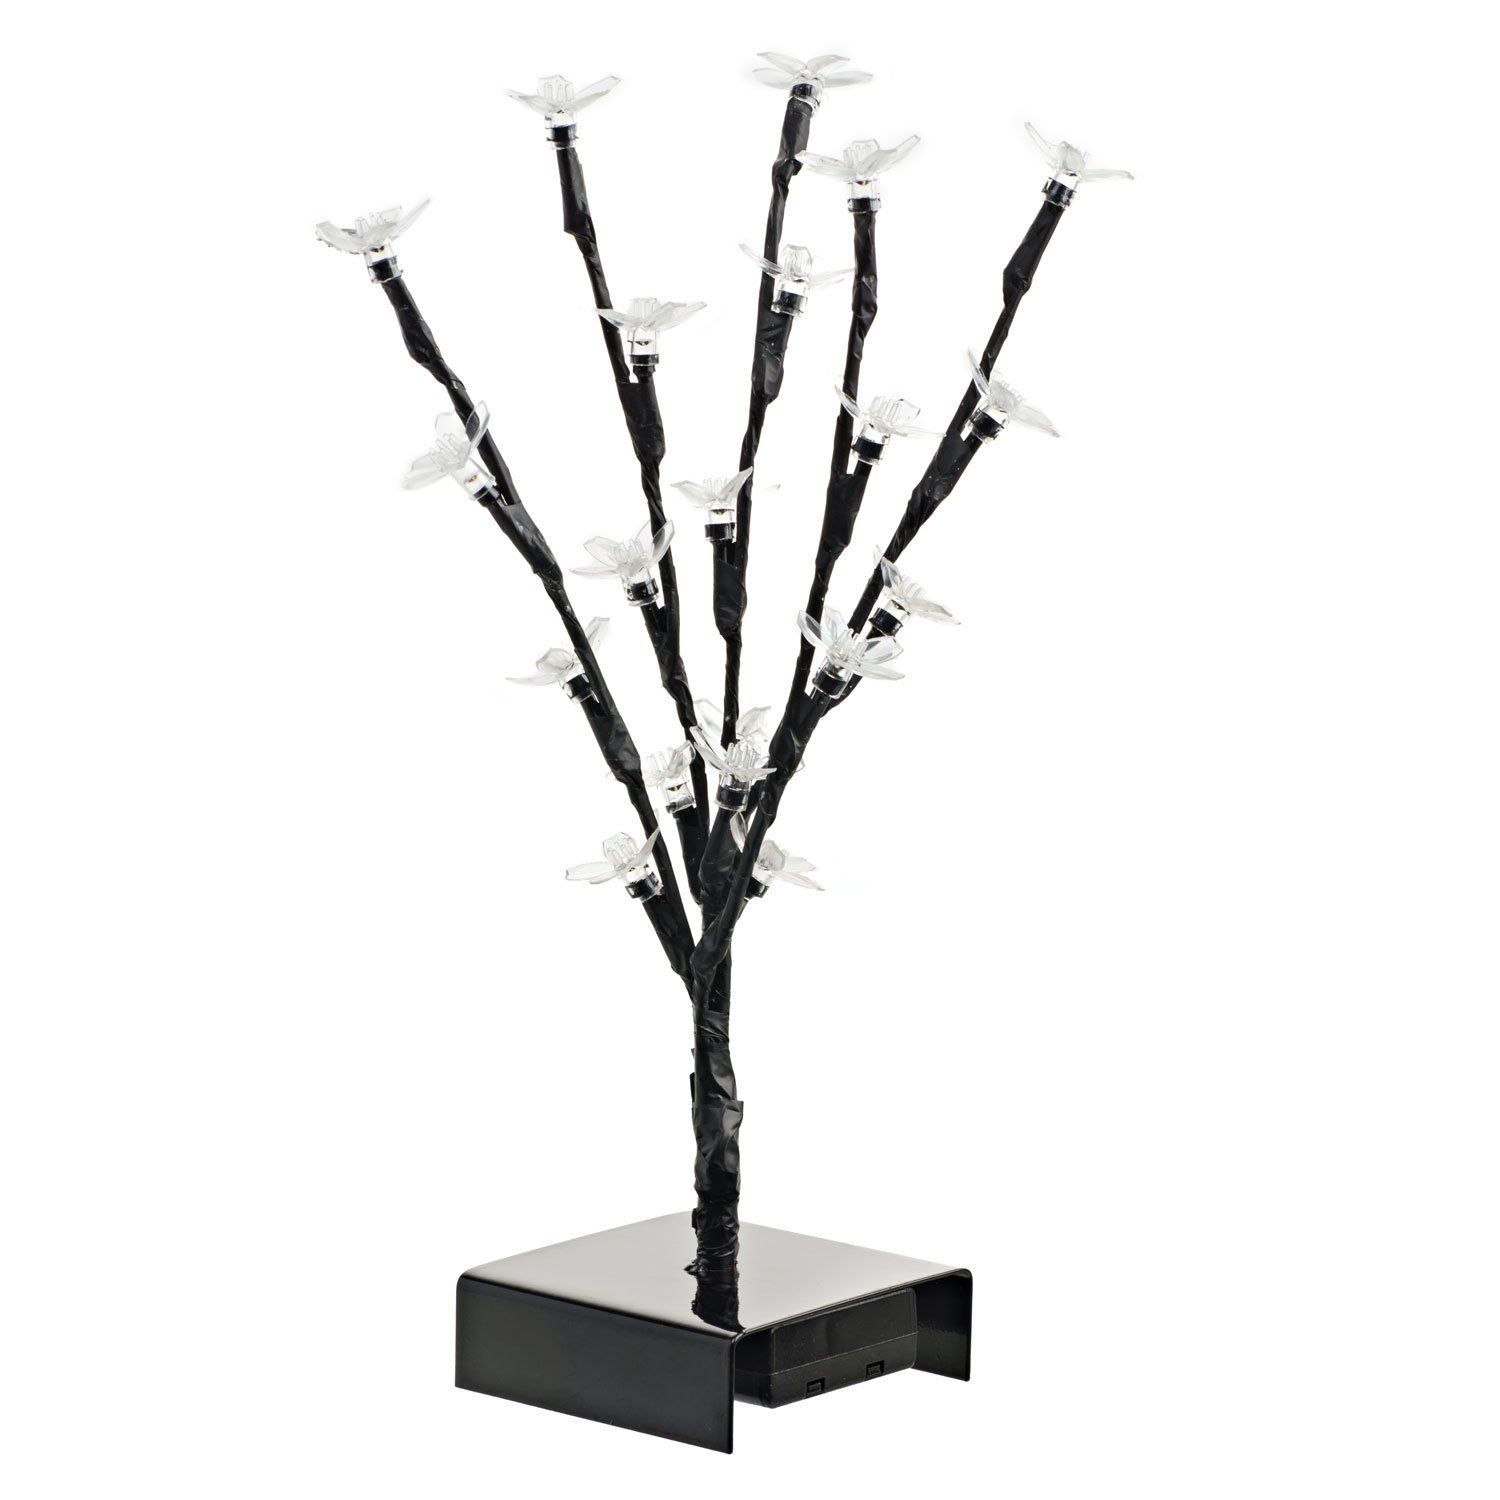 Amazon.com: 12 Inch LED Cherry Blossom Tree   Lighted Artificial Trees For  Home Decor Office Desk Decorations Battery Operated Table Tops.